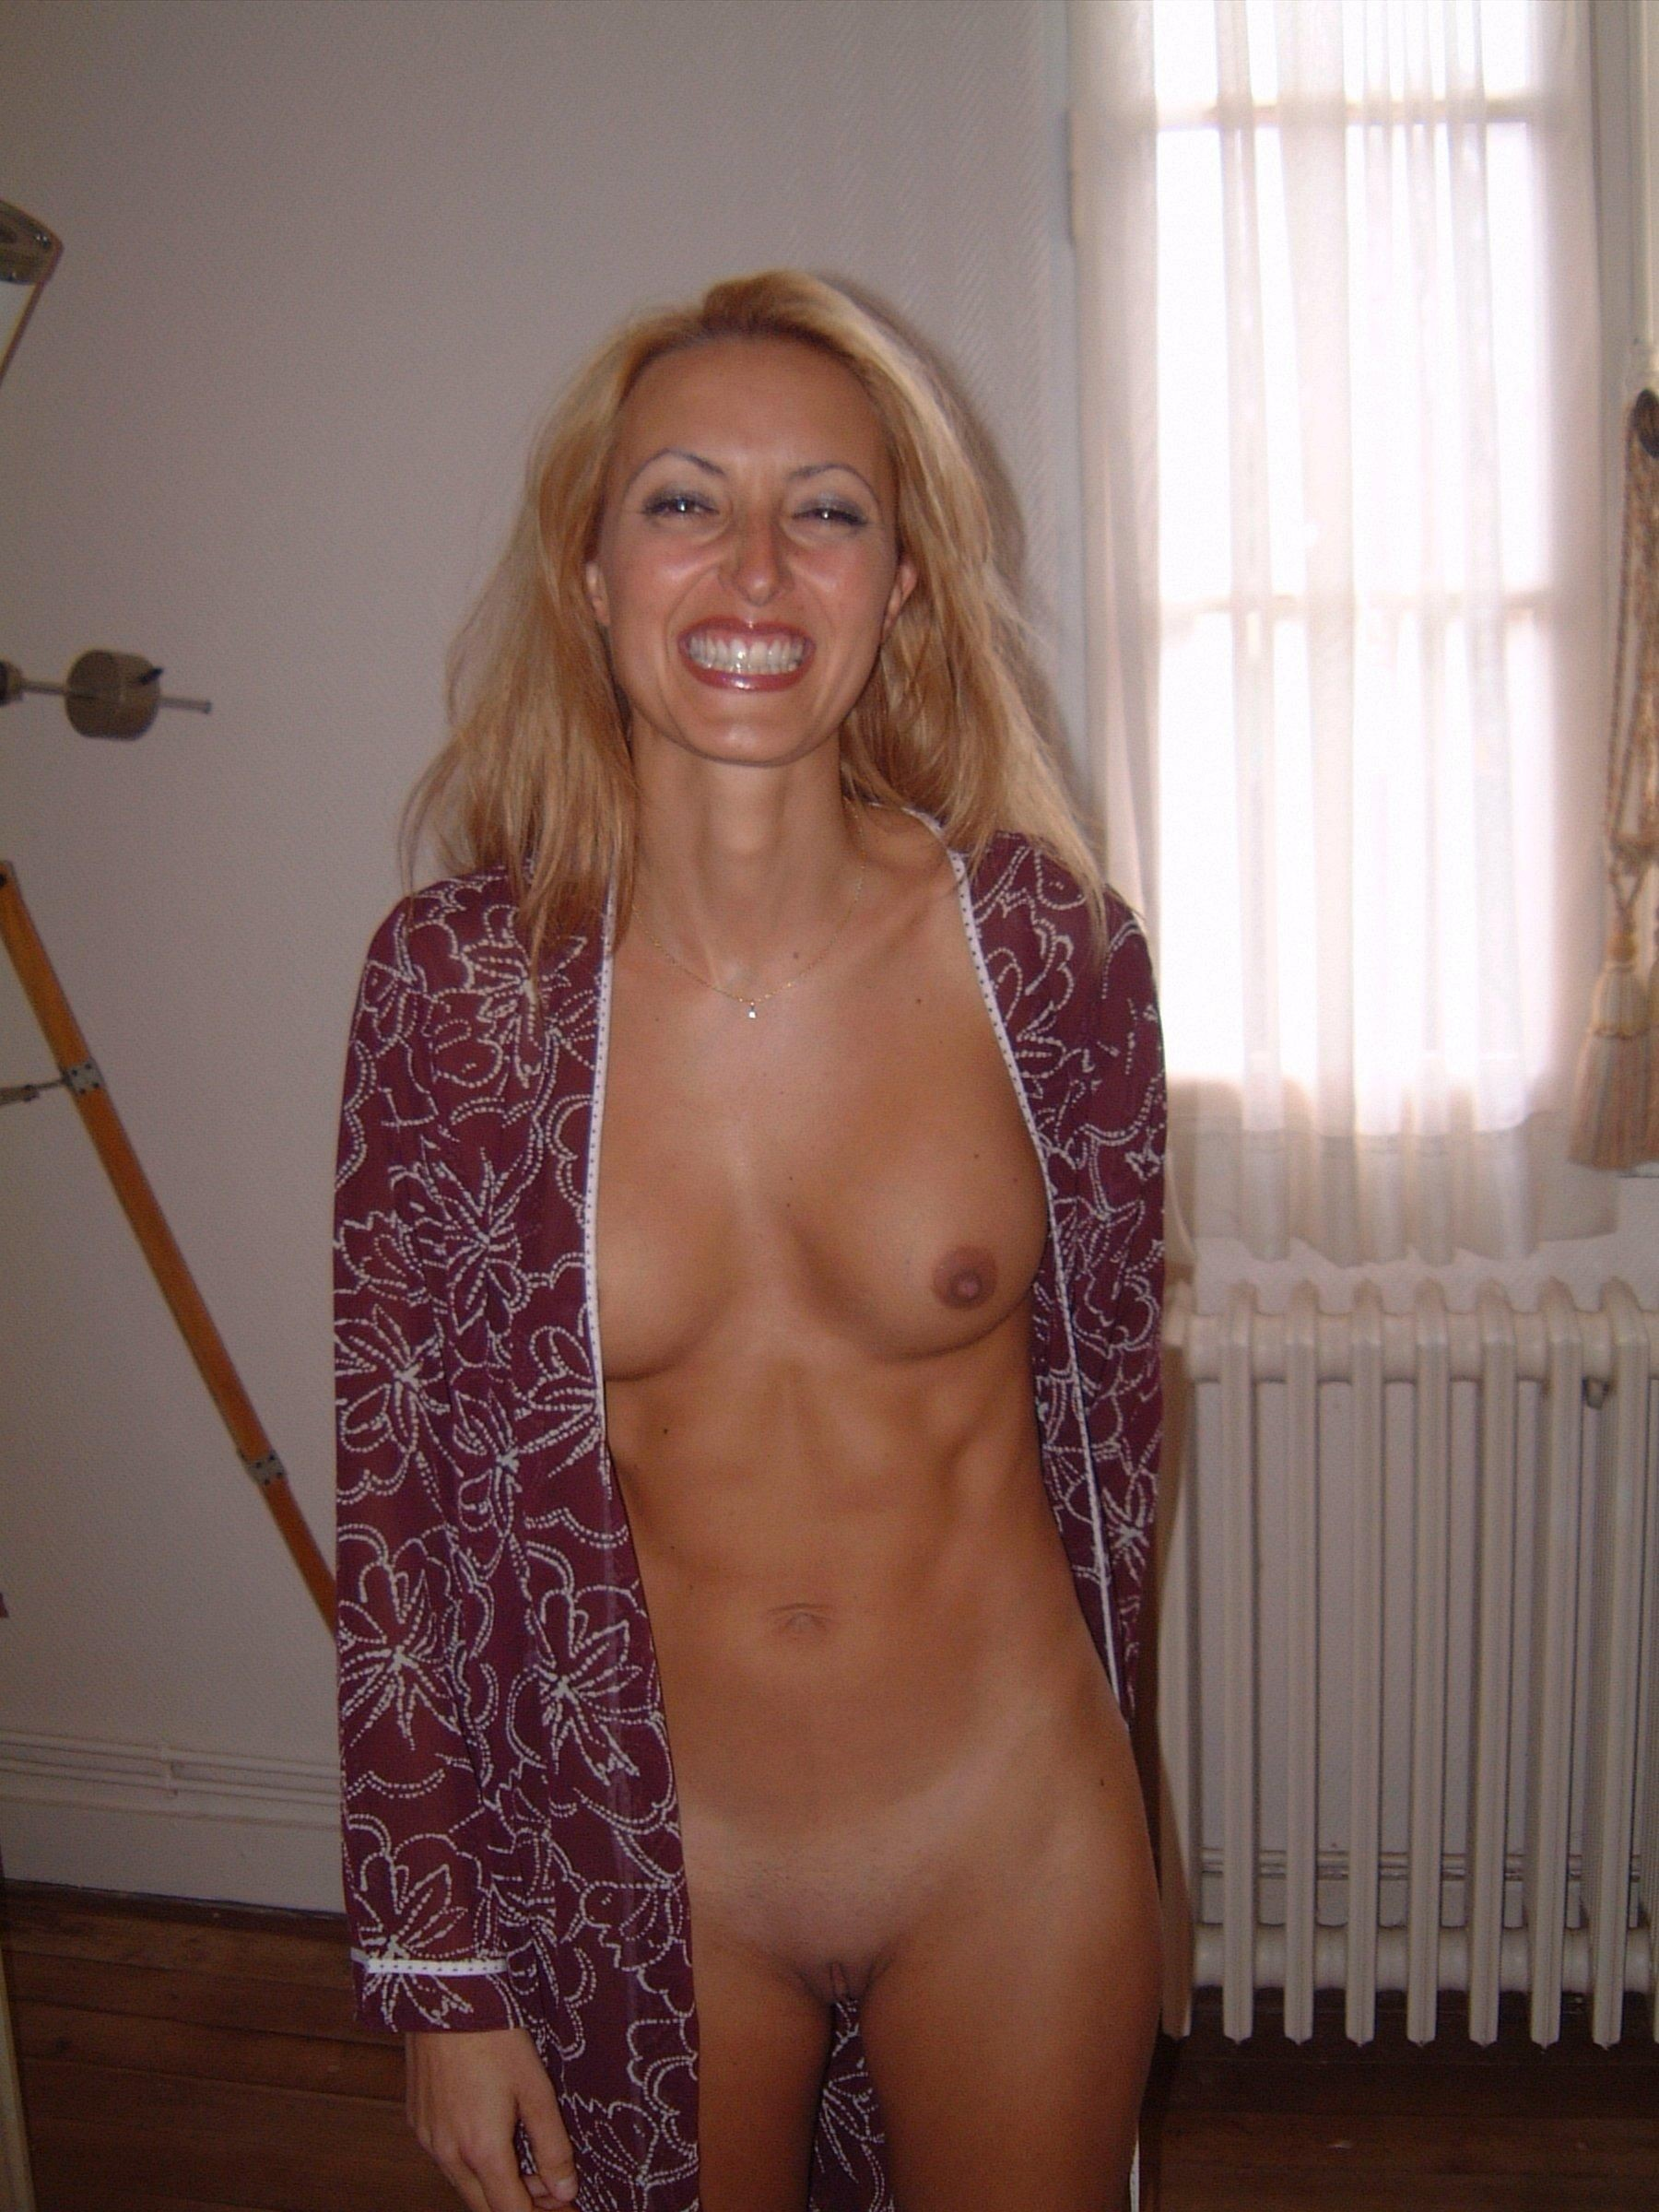 plain city milf personals Milf - enjoy these rare looks at hot milfs and hot moms next door in the nude as they send in their naked home pics and photos find a milf here.